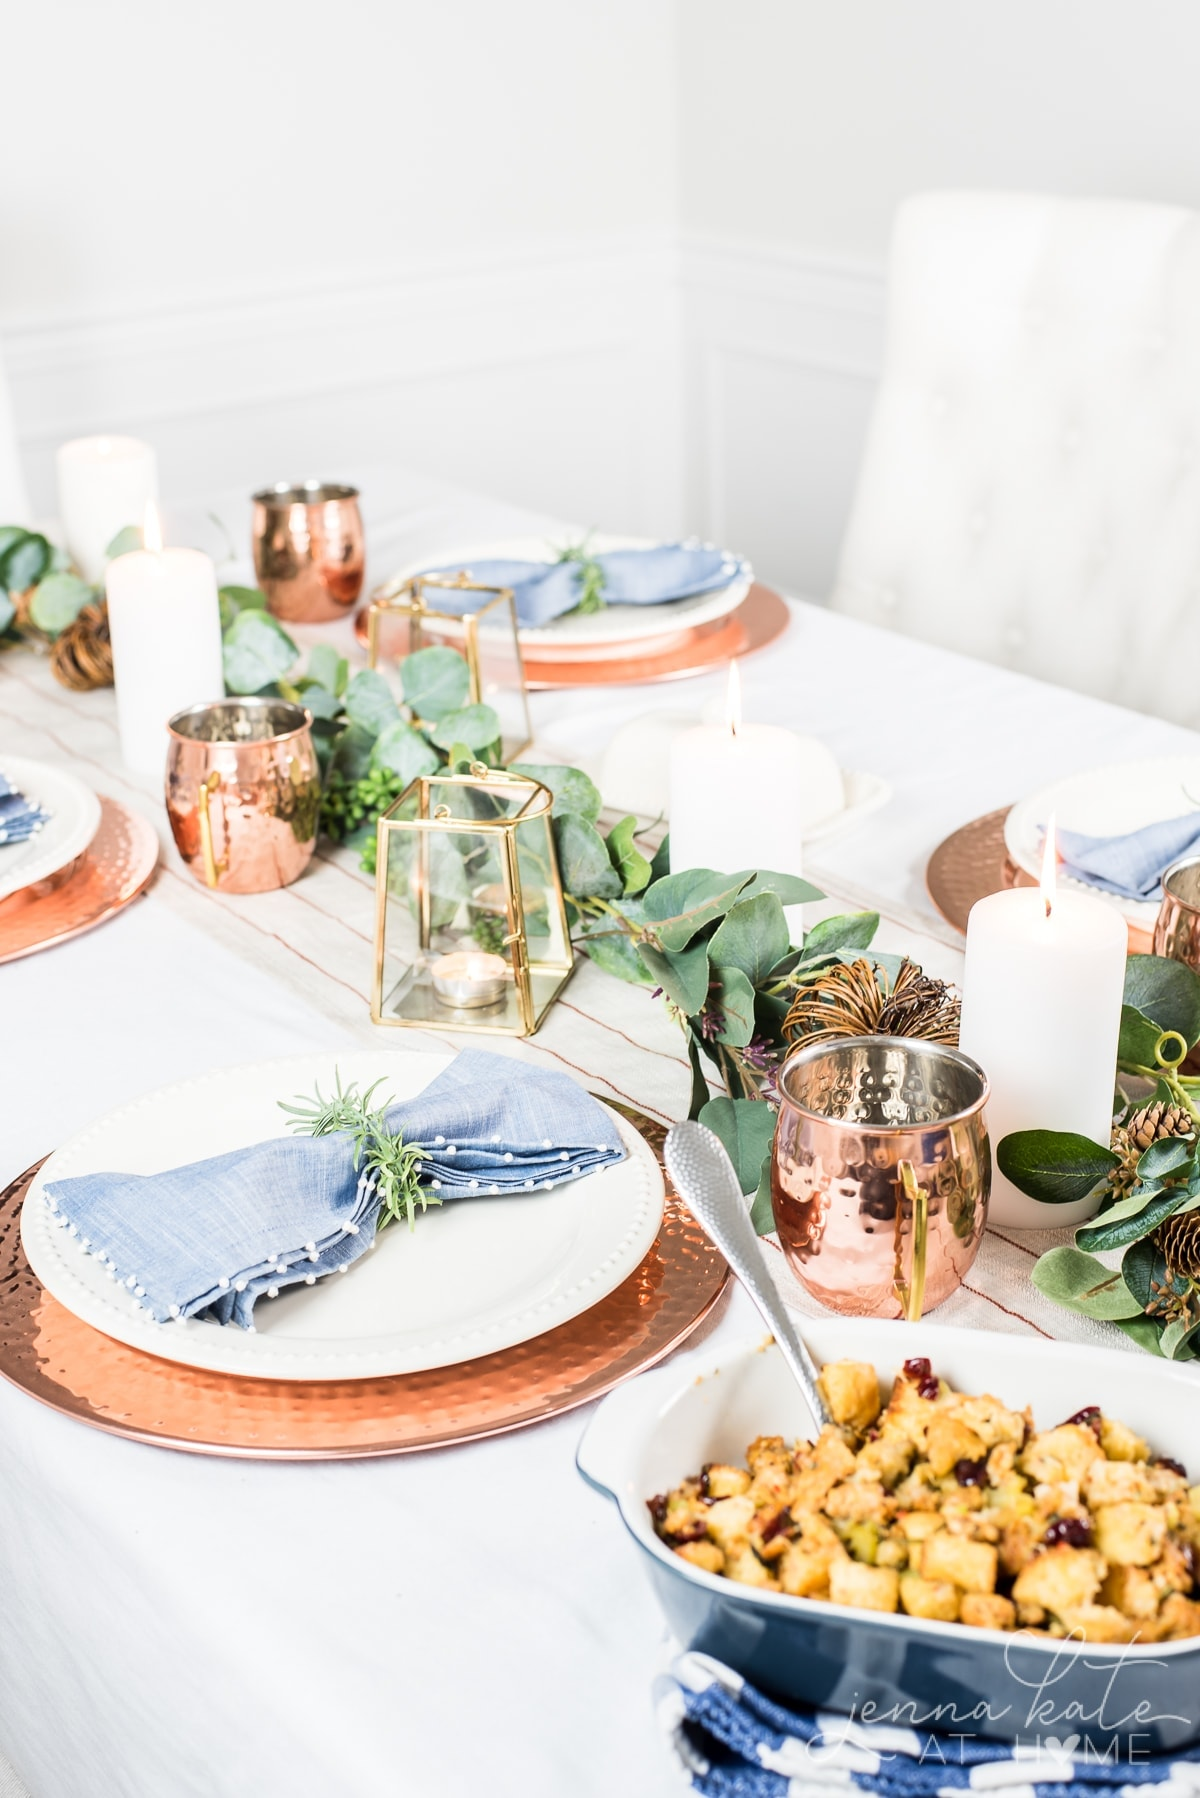 My Thanksgiving tablescape is a non-traditional theme of warm copper dinnerware and green foliage